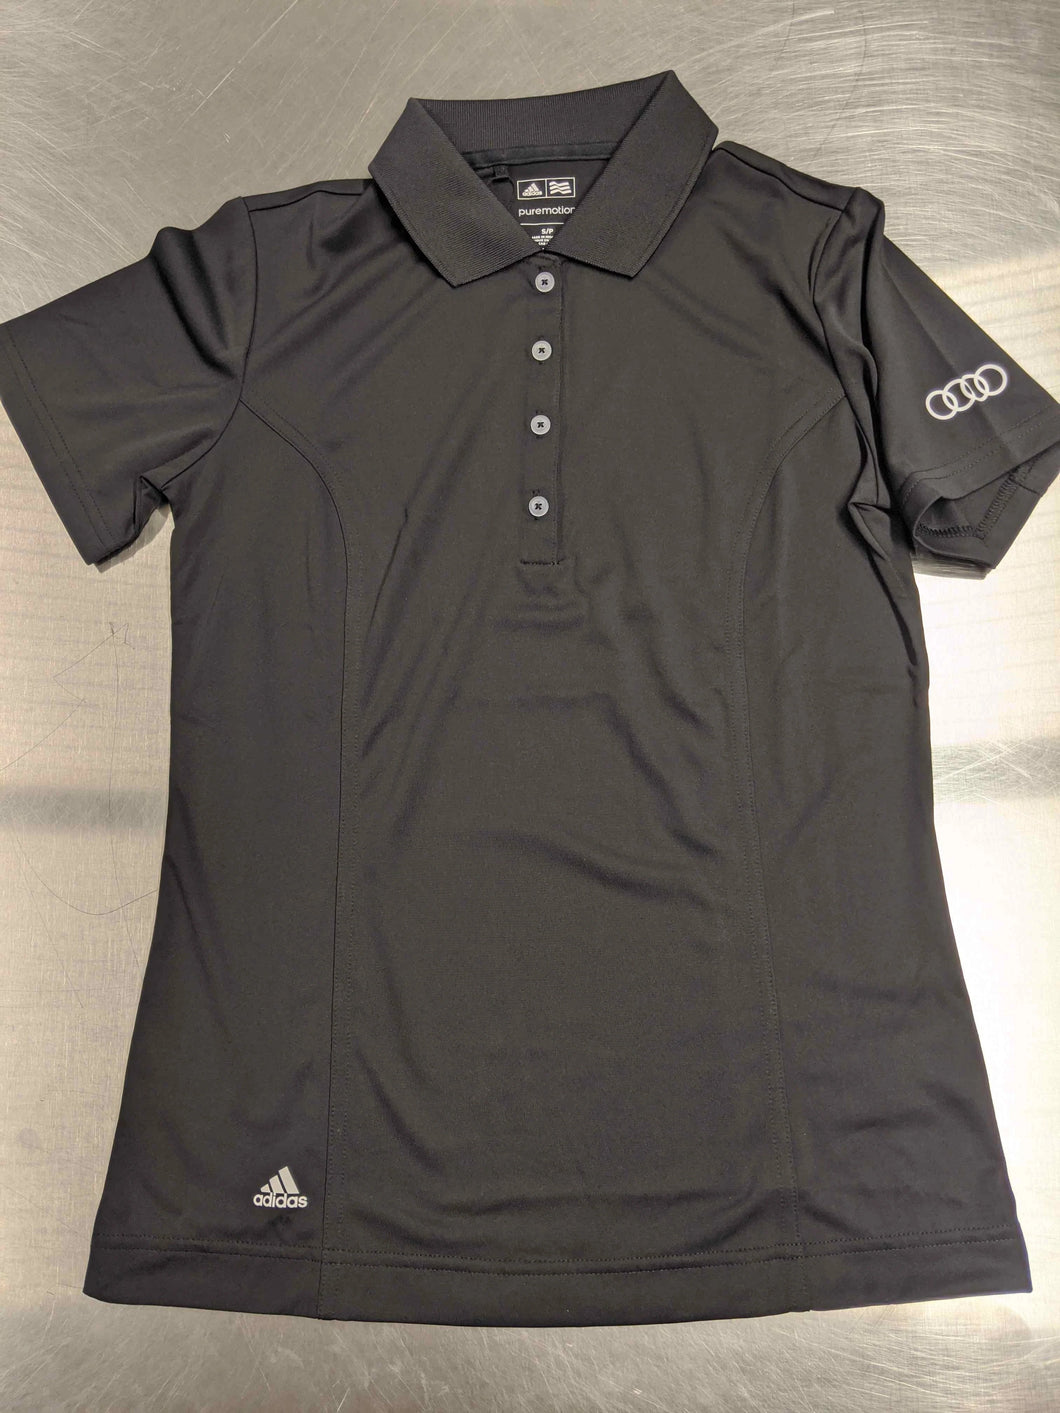 Womens Black Adidas Short-sleeve Polo Shirt